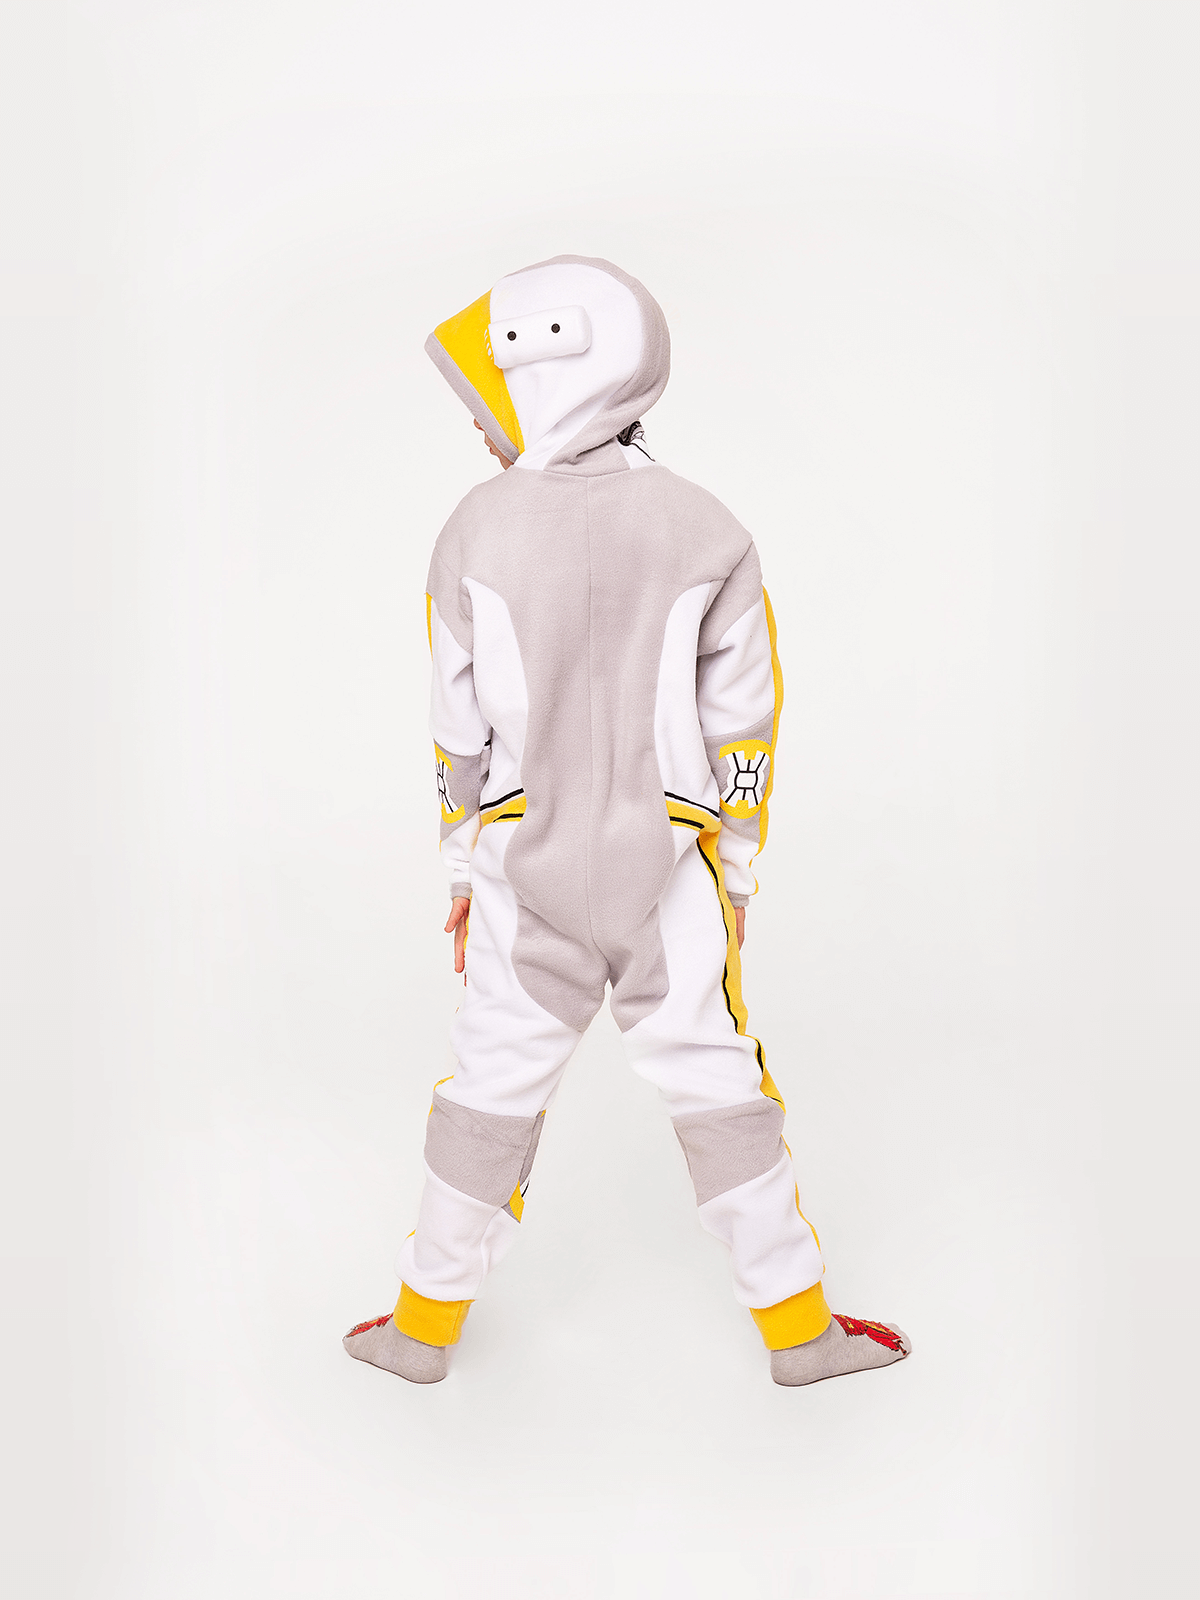 Pajamas Spacesuit. Color yellow.  Technique of prints applied: silkscreen printing.